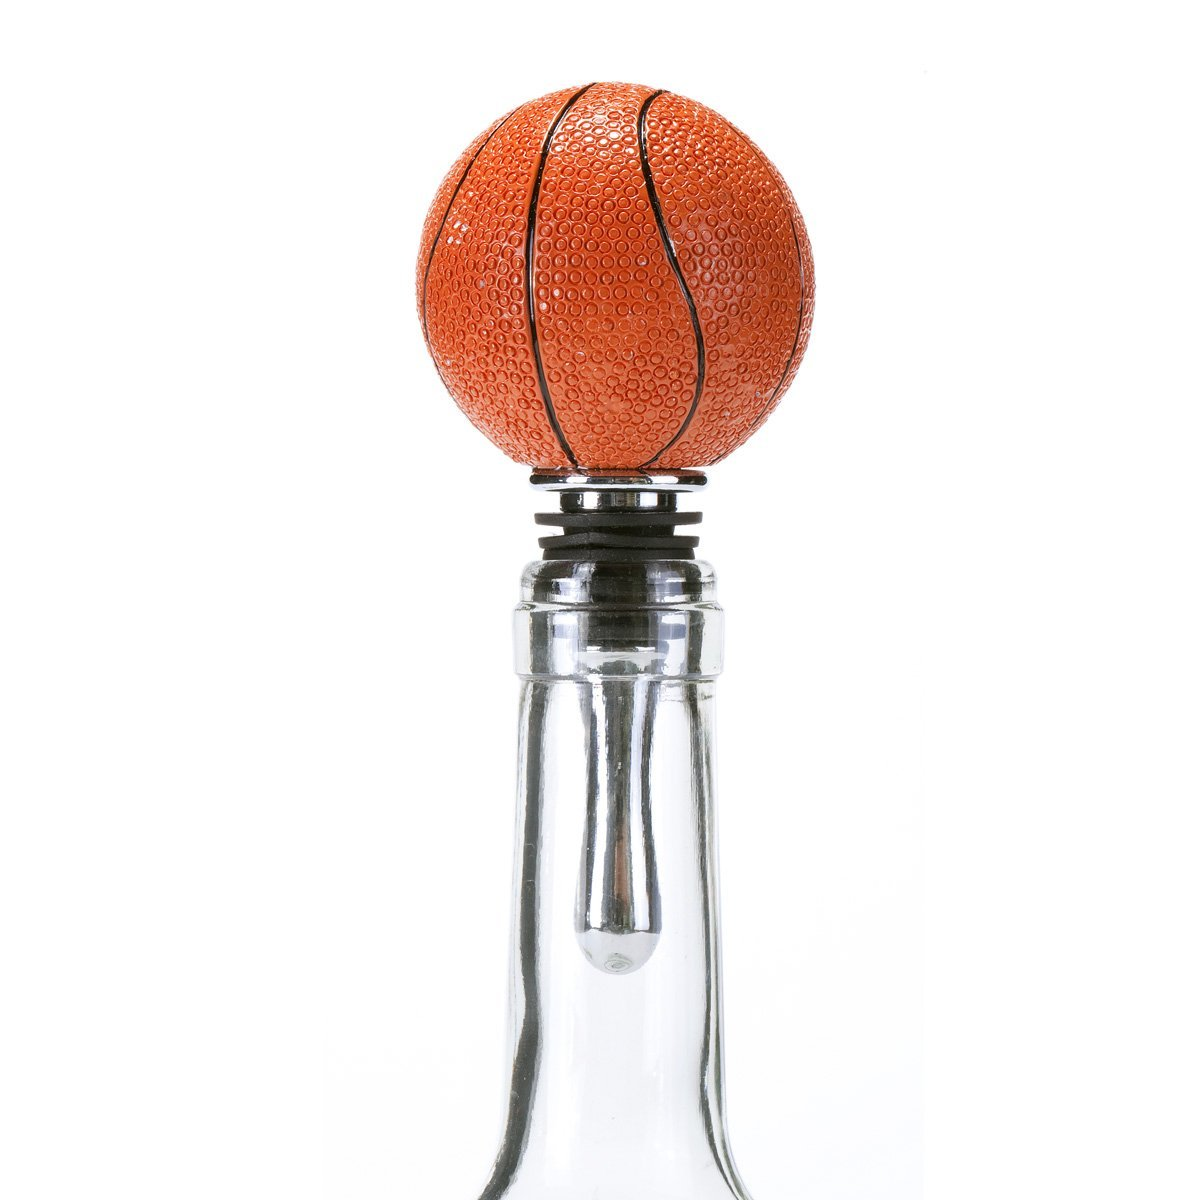 Oenophilia Sports Wine Ball Stopper, Basketball